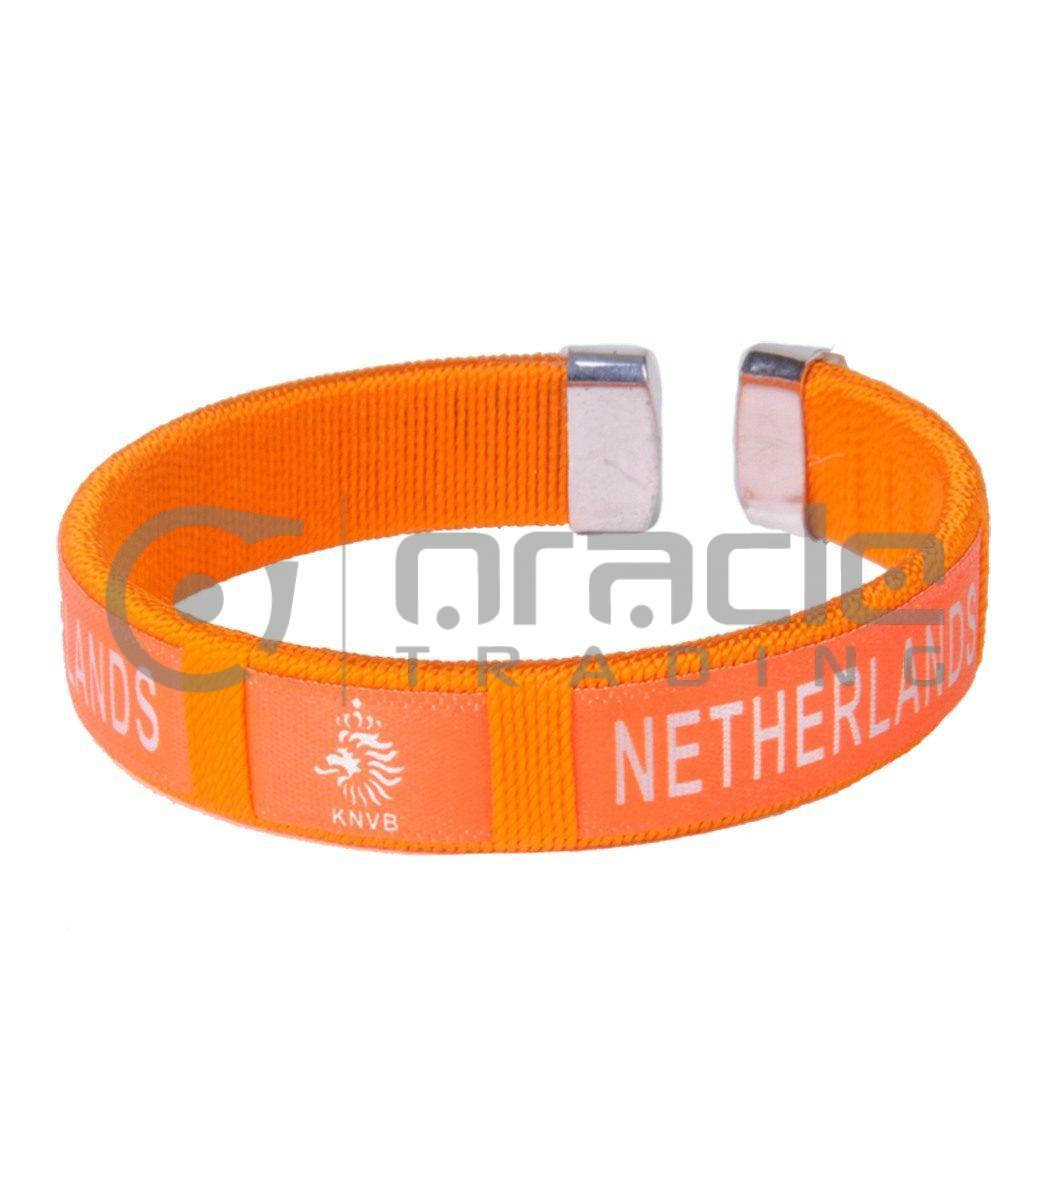 Holland C Bracelets 12-Pack - Orange